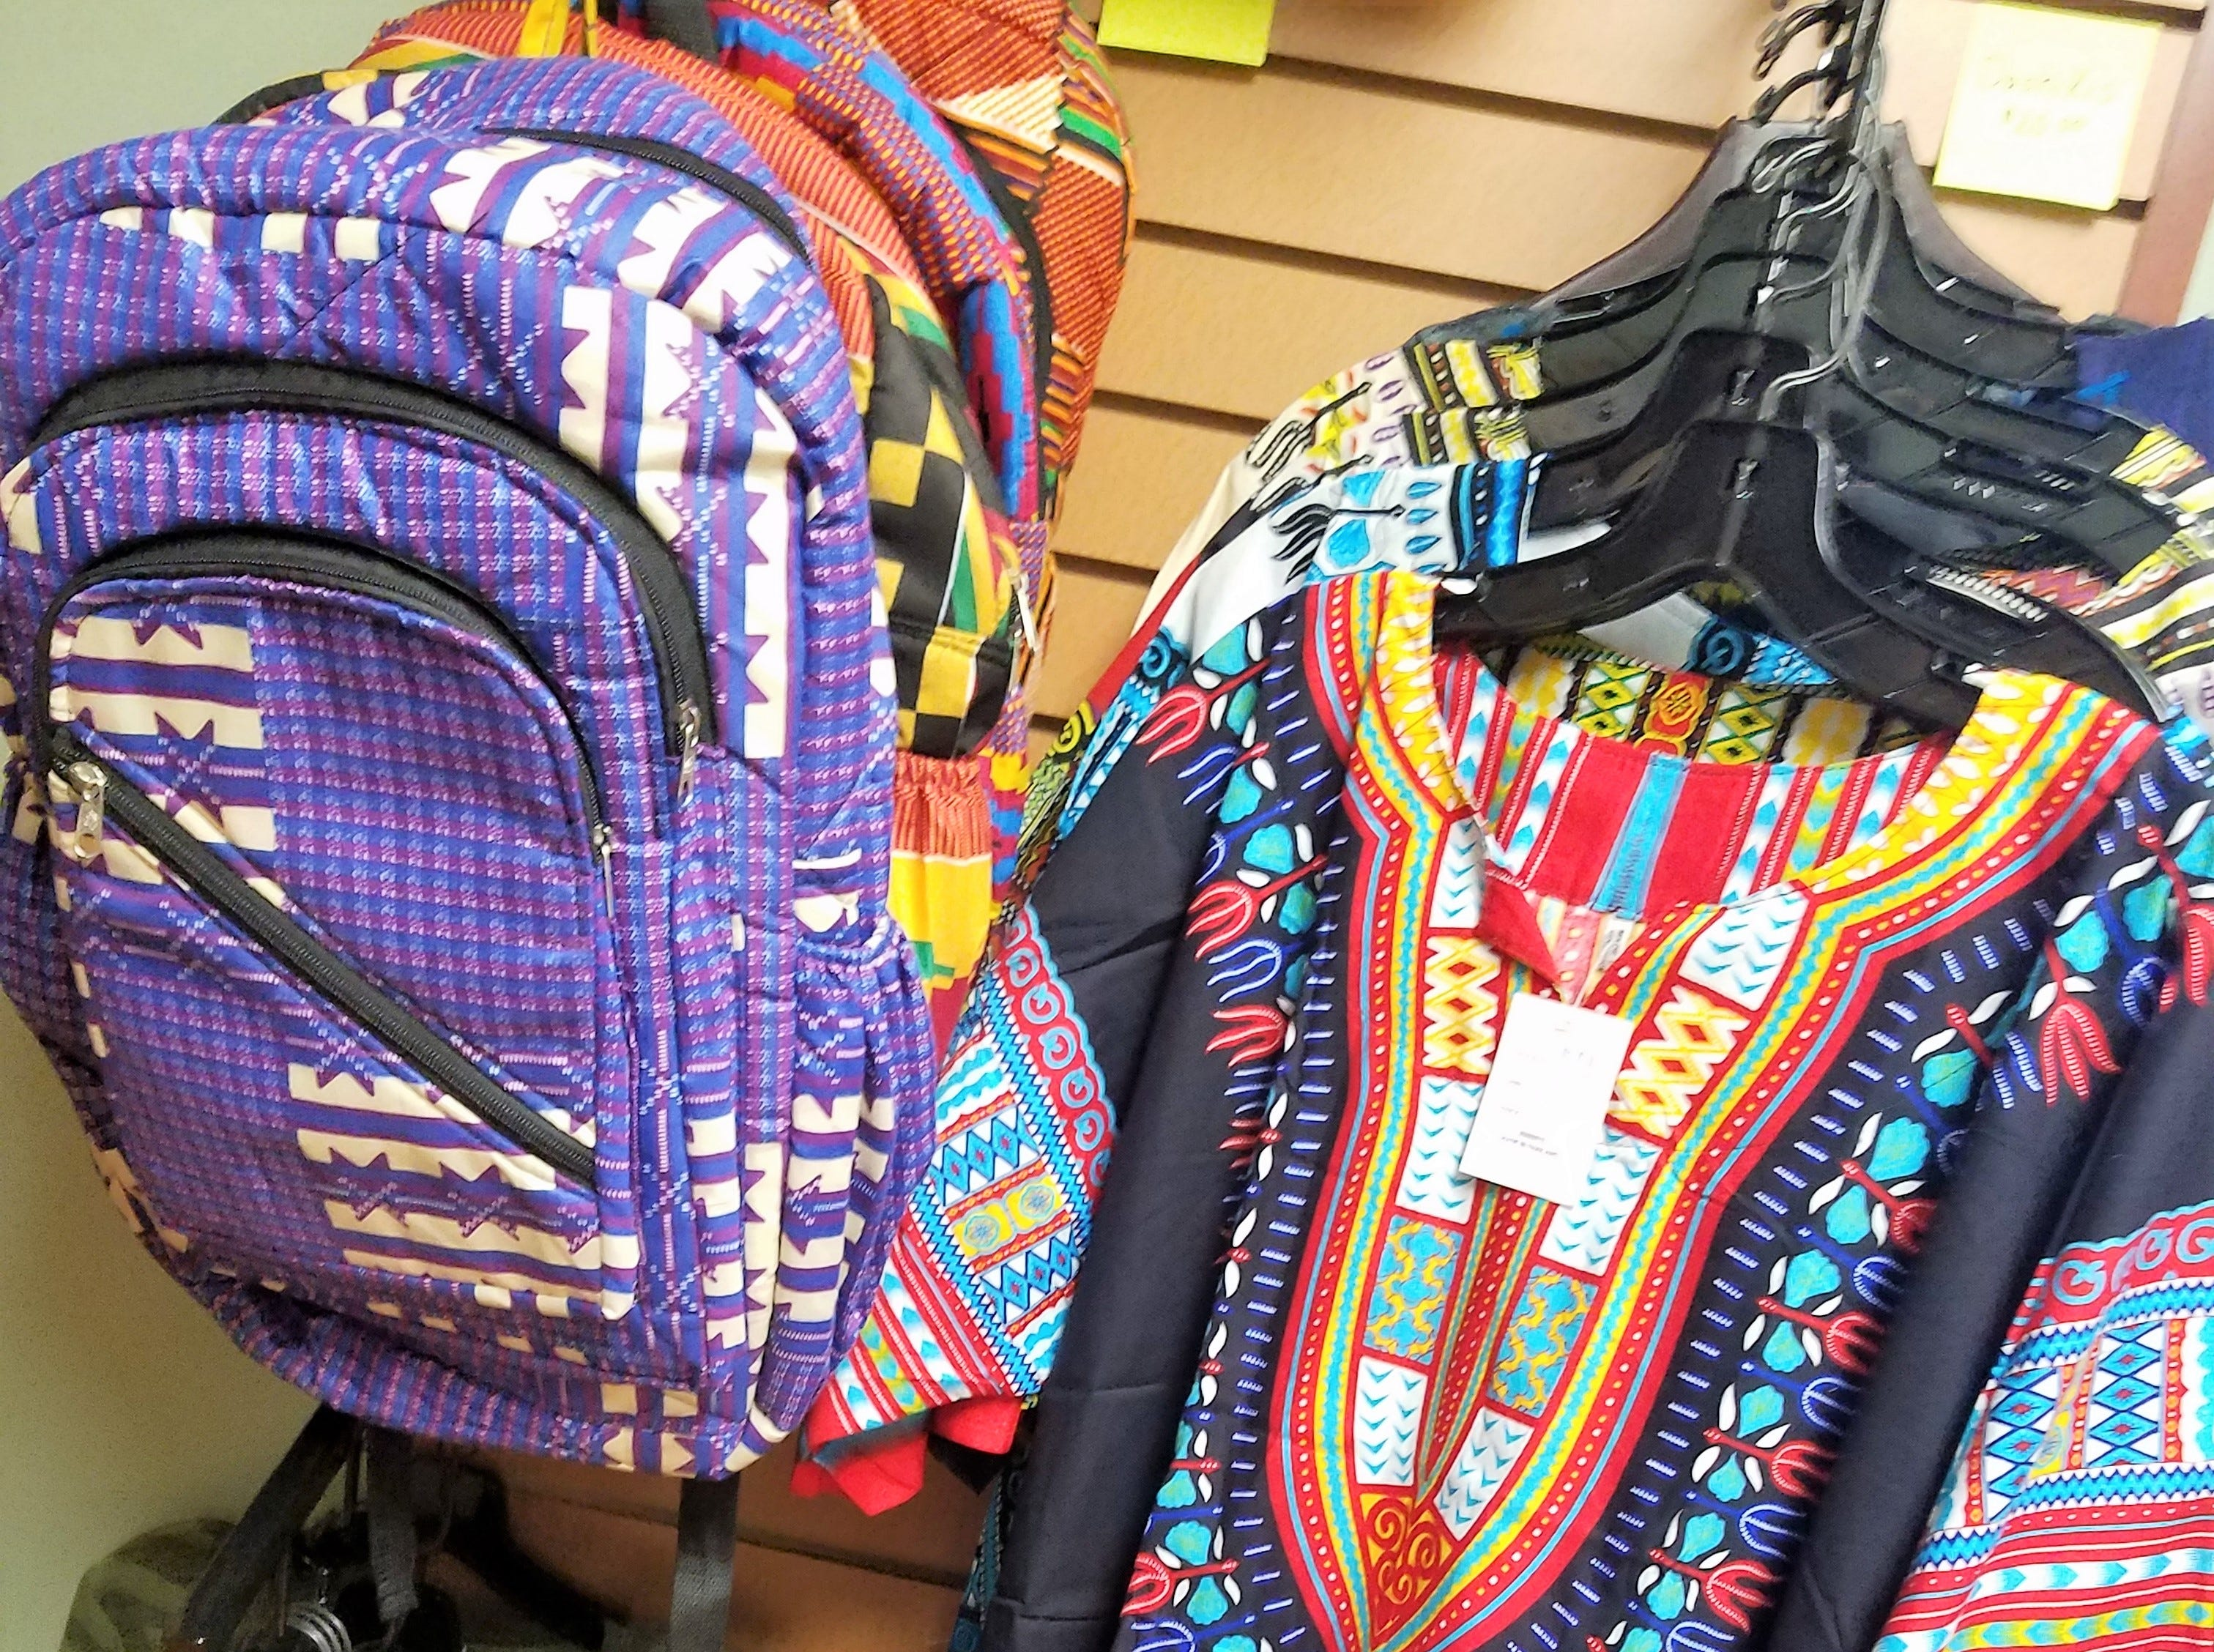 Evansville African American Museum, import fabric goods and clothing from Africa.